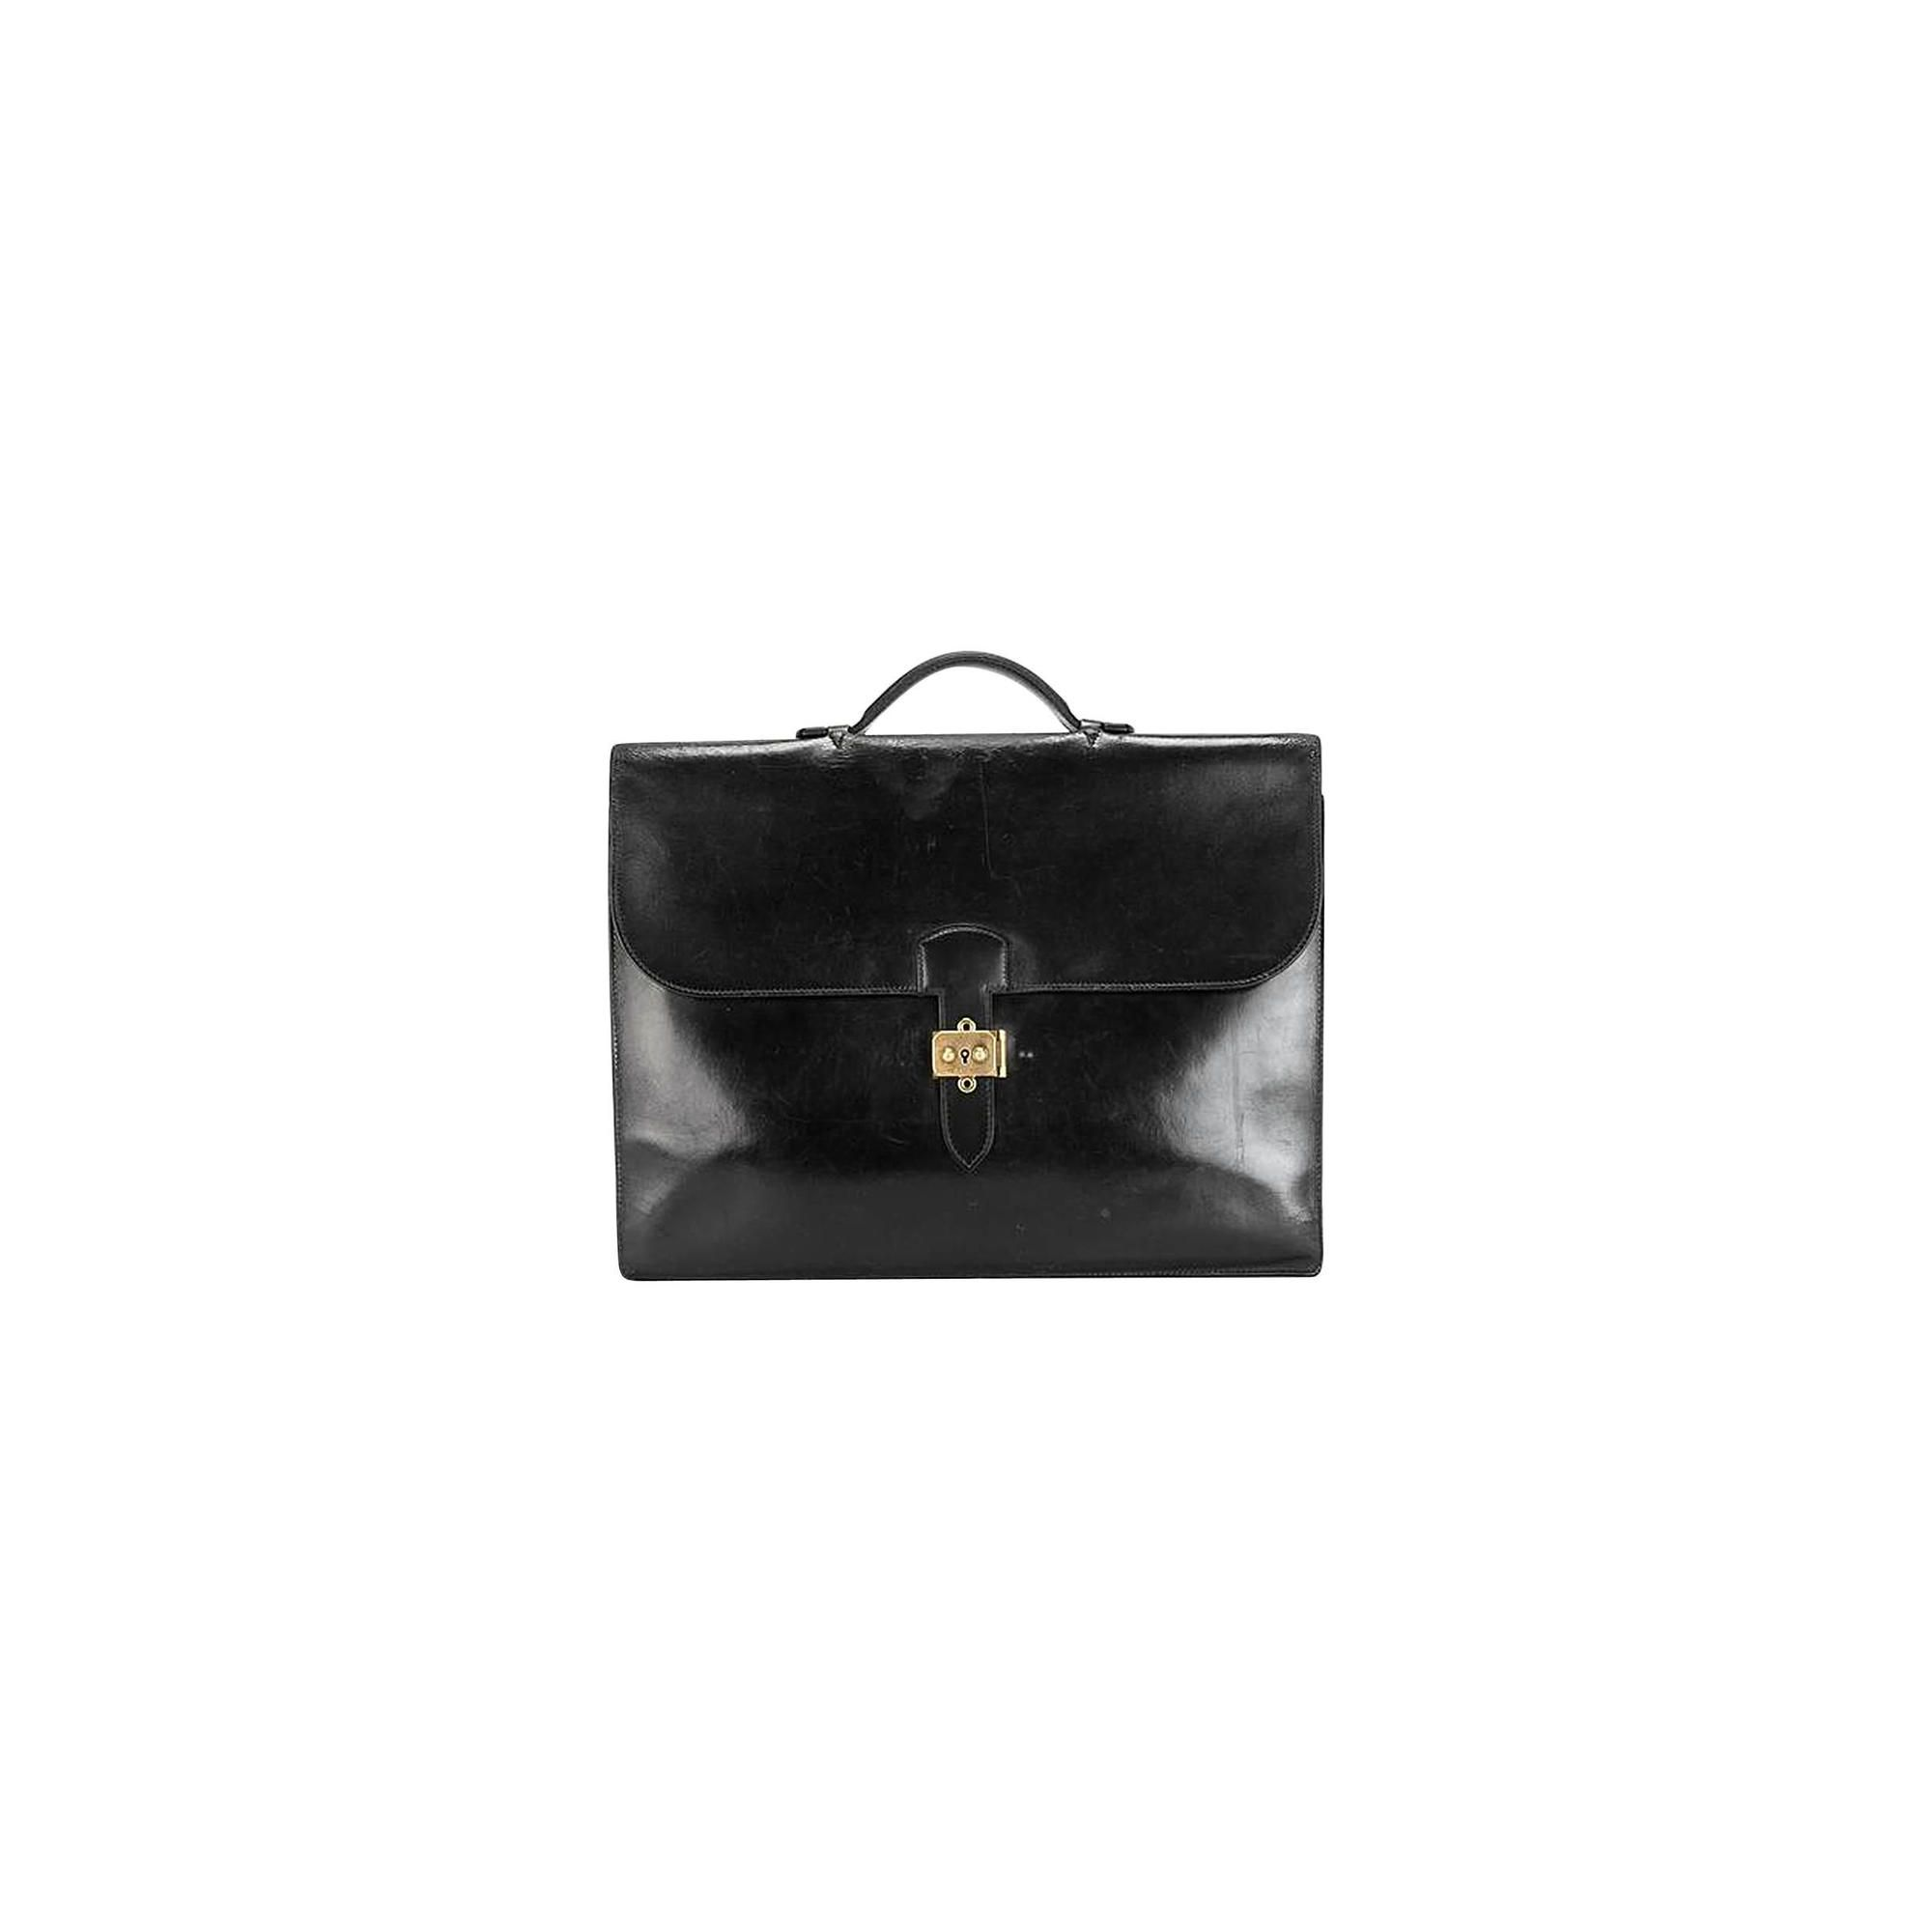 55fbca477236 Hermes Black Calf Leather Briefcase Sac a Depeches